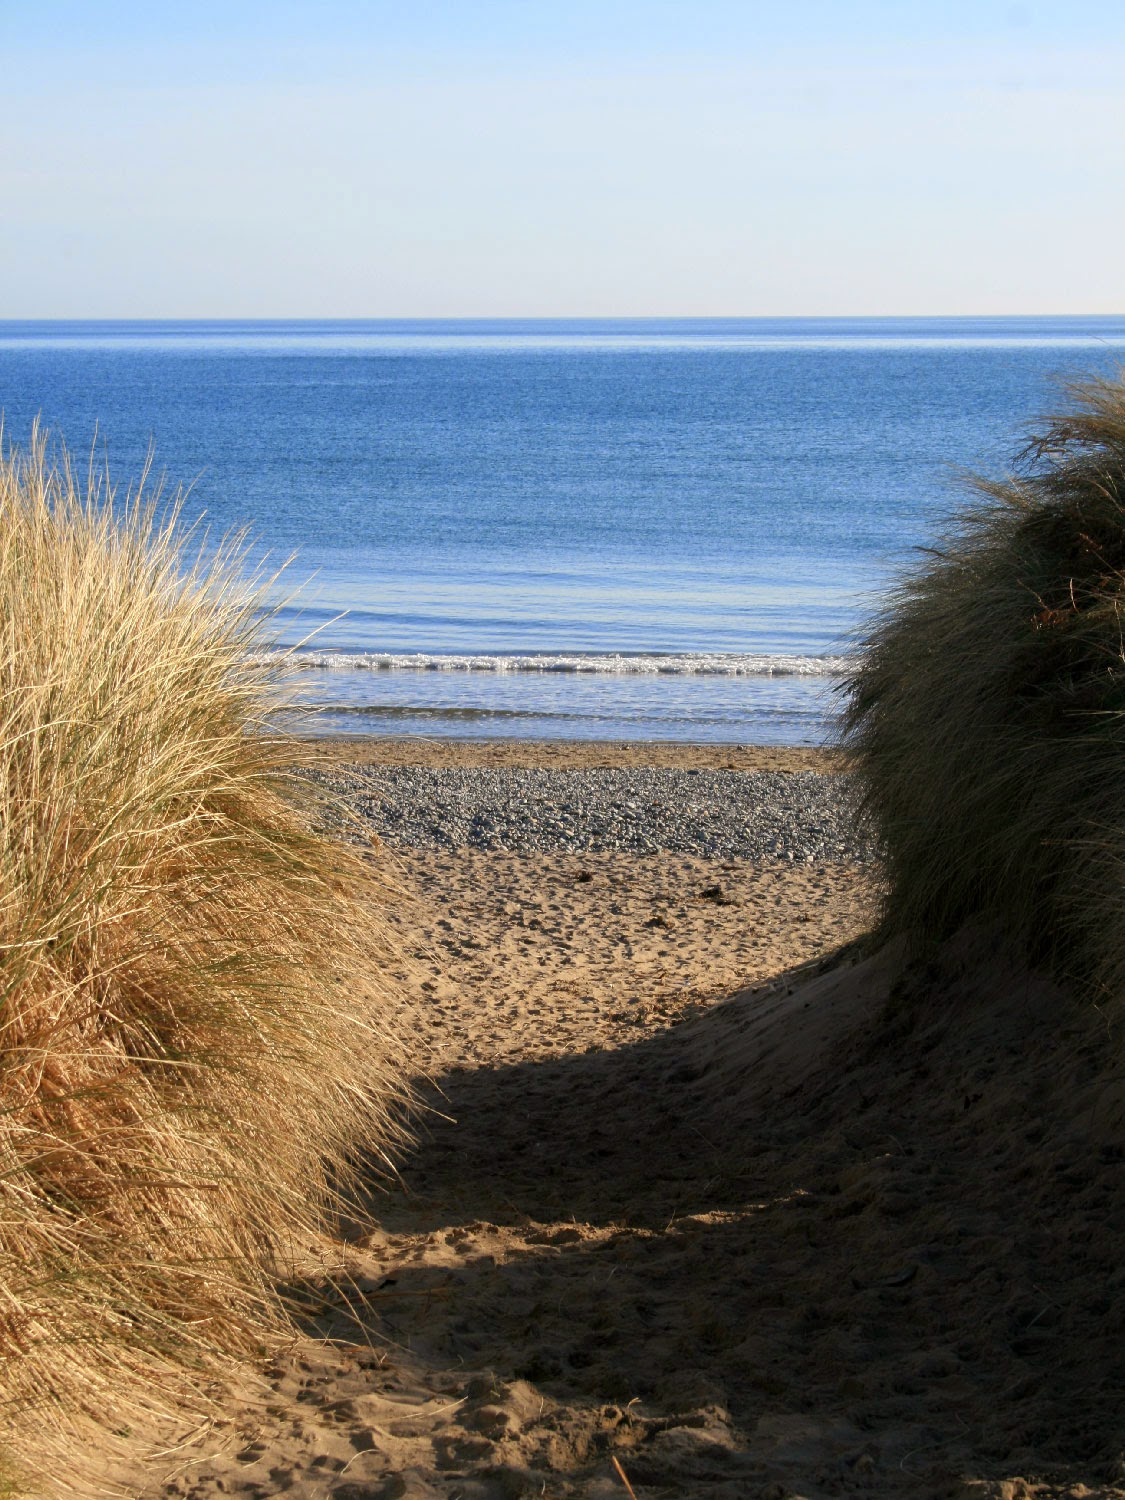 The sea between the dunes